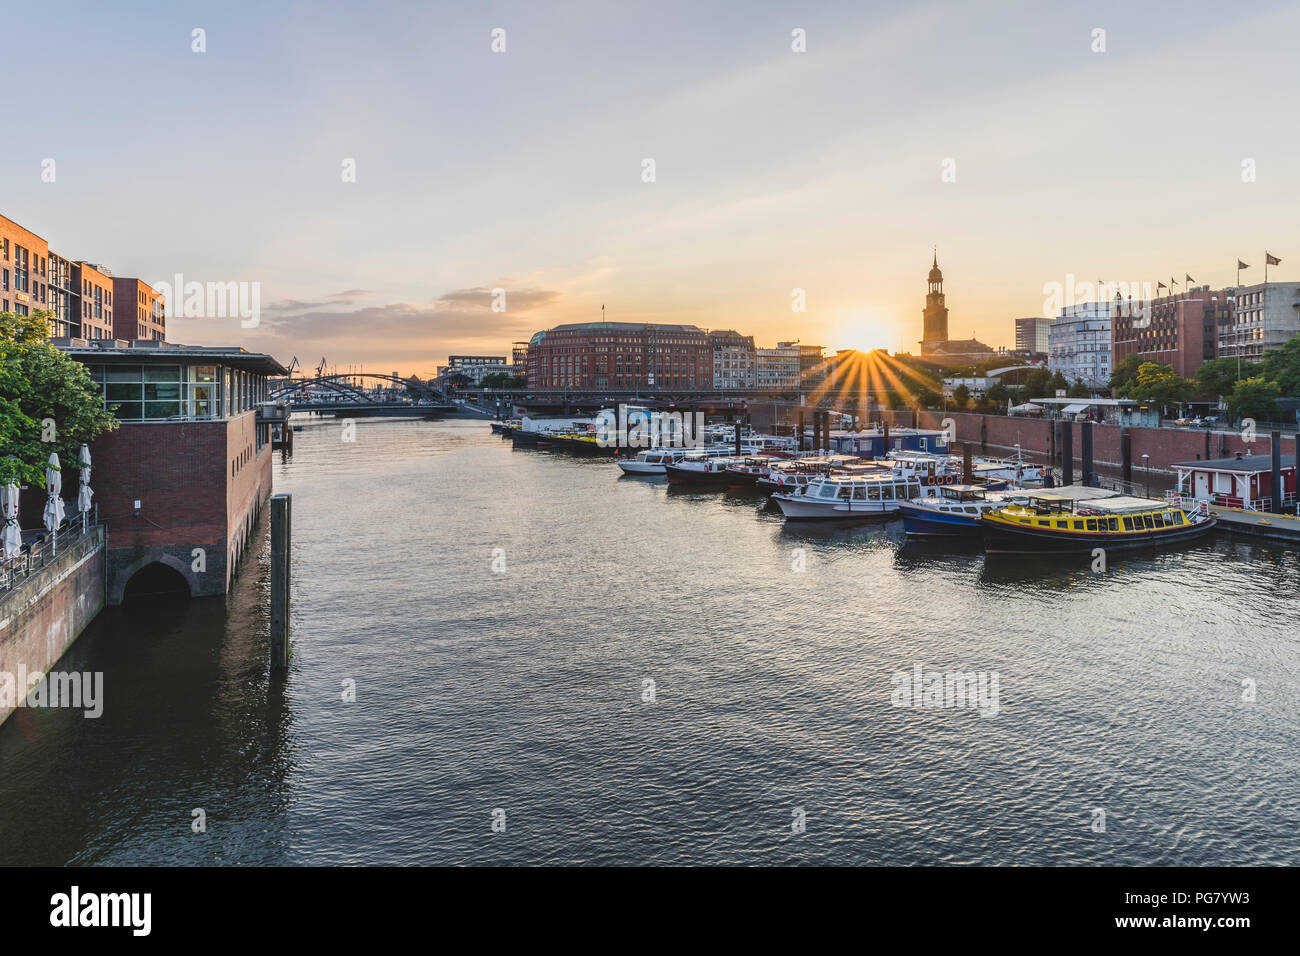 Germany, Hamburg, inland harbour with St. Michaelis Church in background - Stock Image